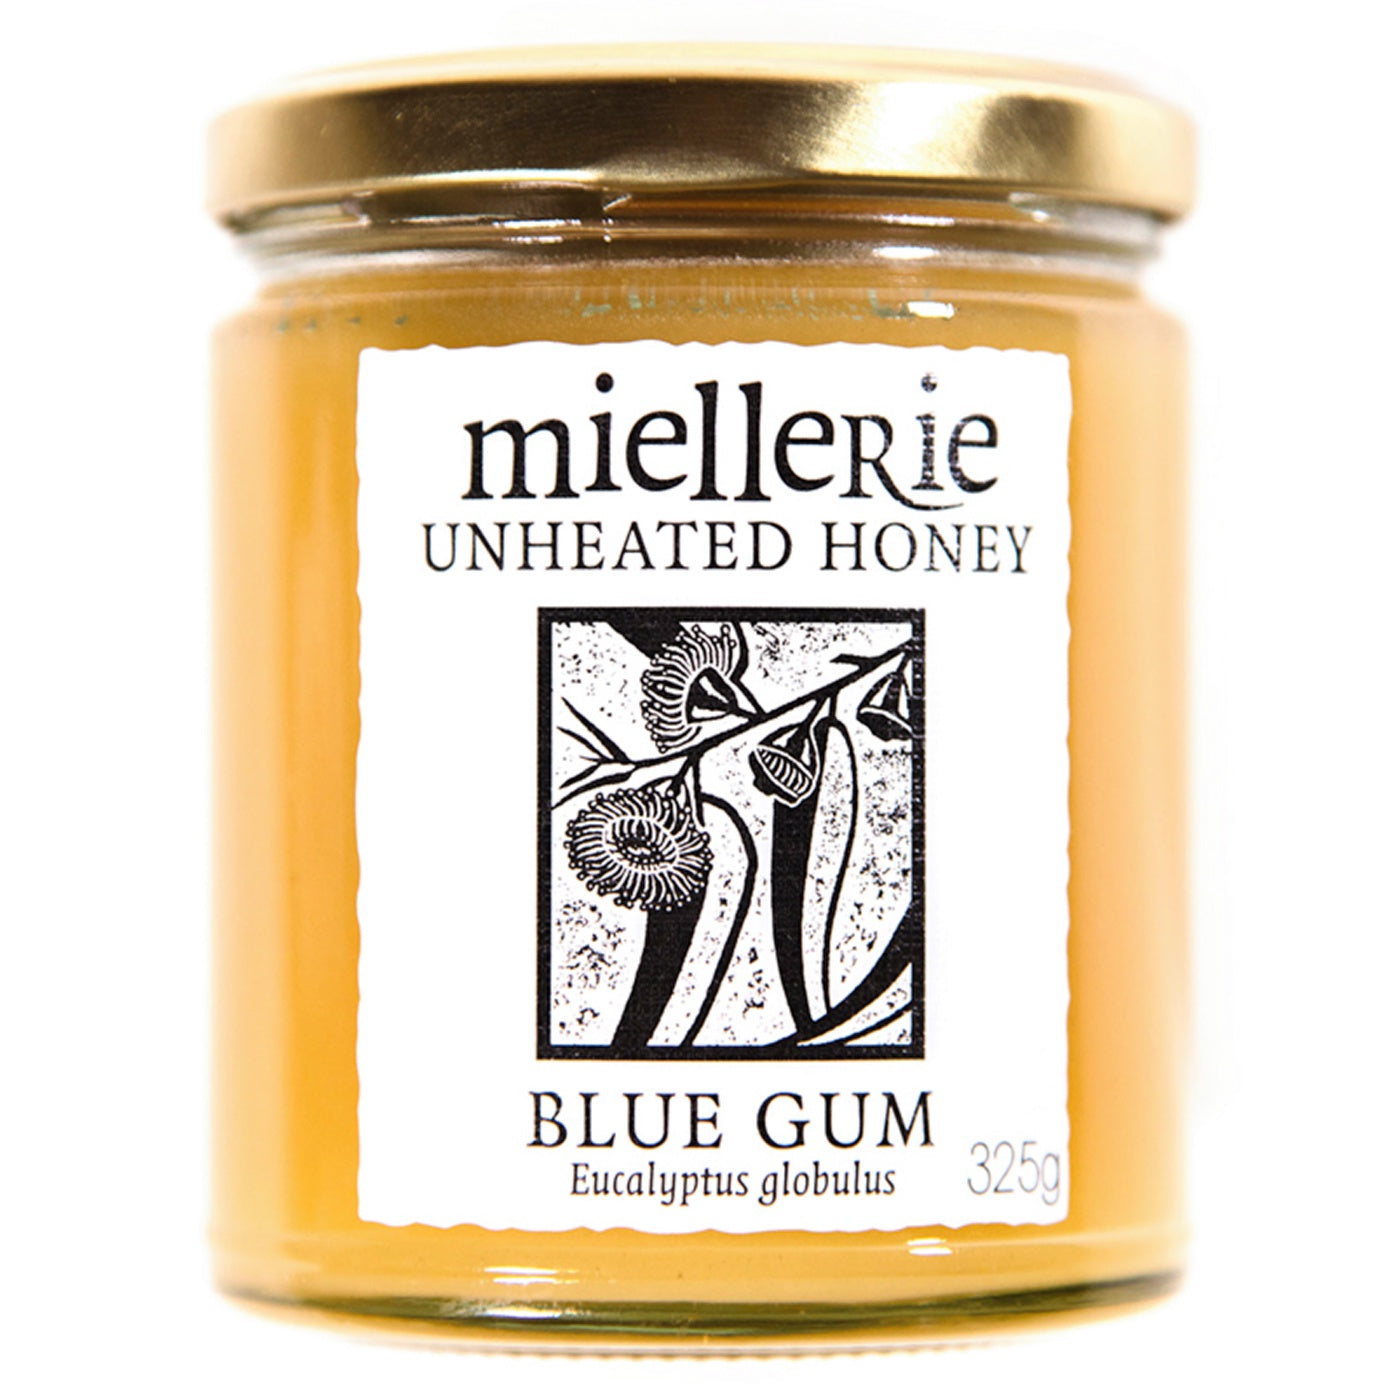 Miellerie Honey – Blue Gum – 325g